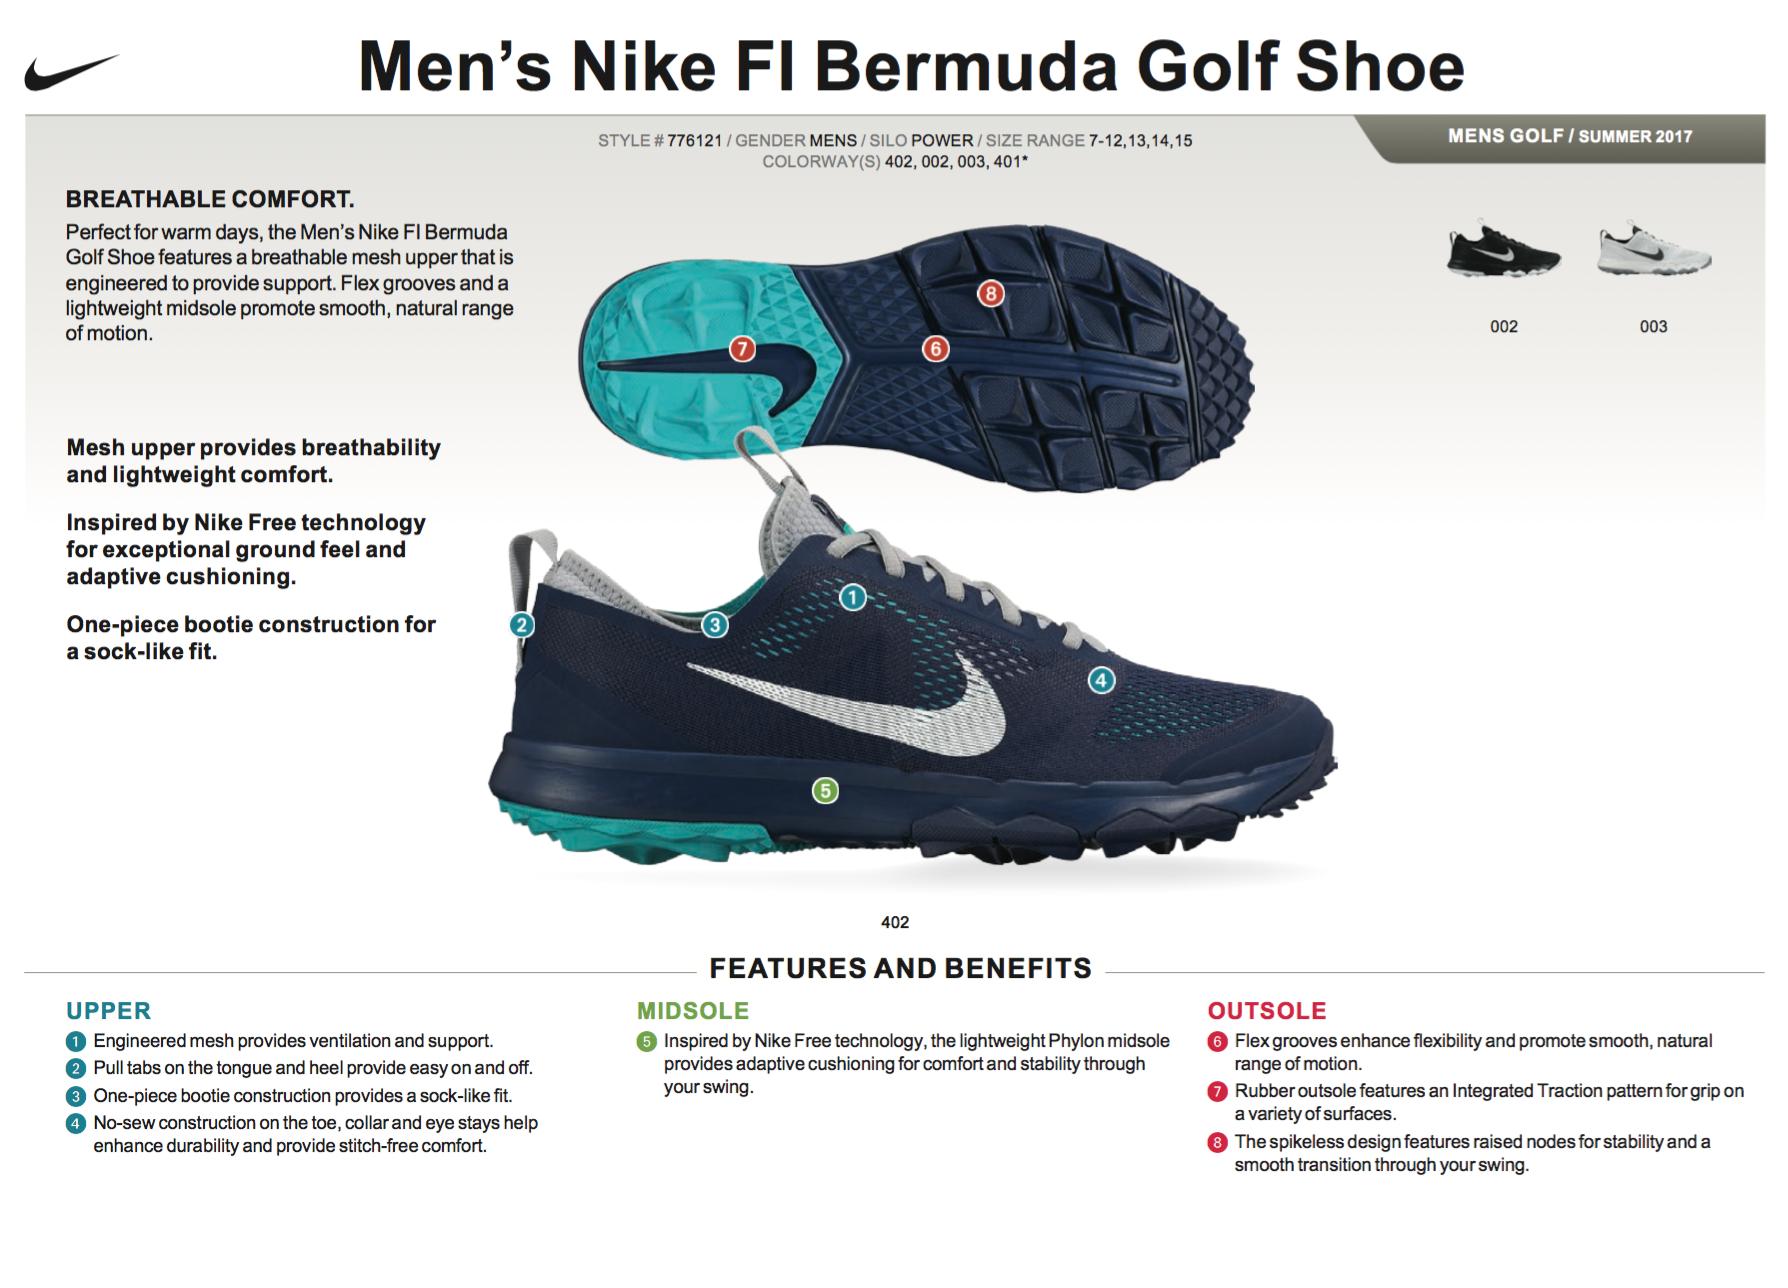 b7c31c9ff6671 ... FI Bermuda Men's Golf Shoe is designed for stability and a locked-in  feel with integrated outsole traction and an interior bootie that hugs the  foot.